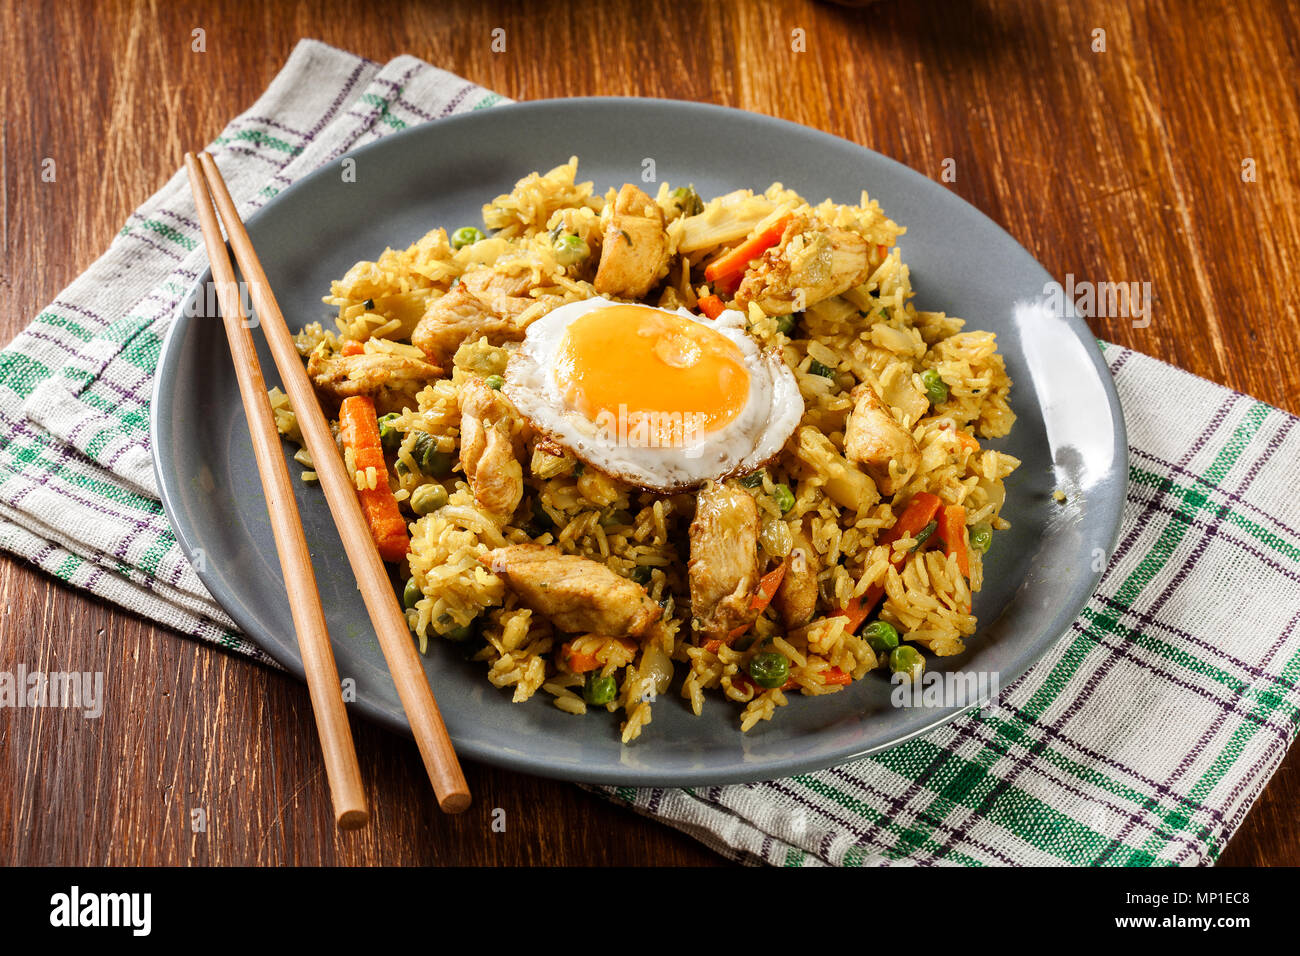 Fried rice nasi goreng with chicken egg and vegetables on a plate. Indonesian cuisine. - Stock Image